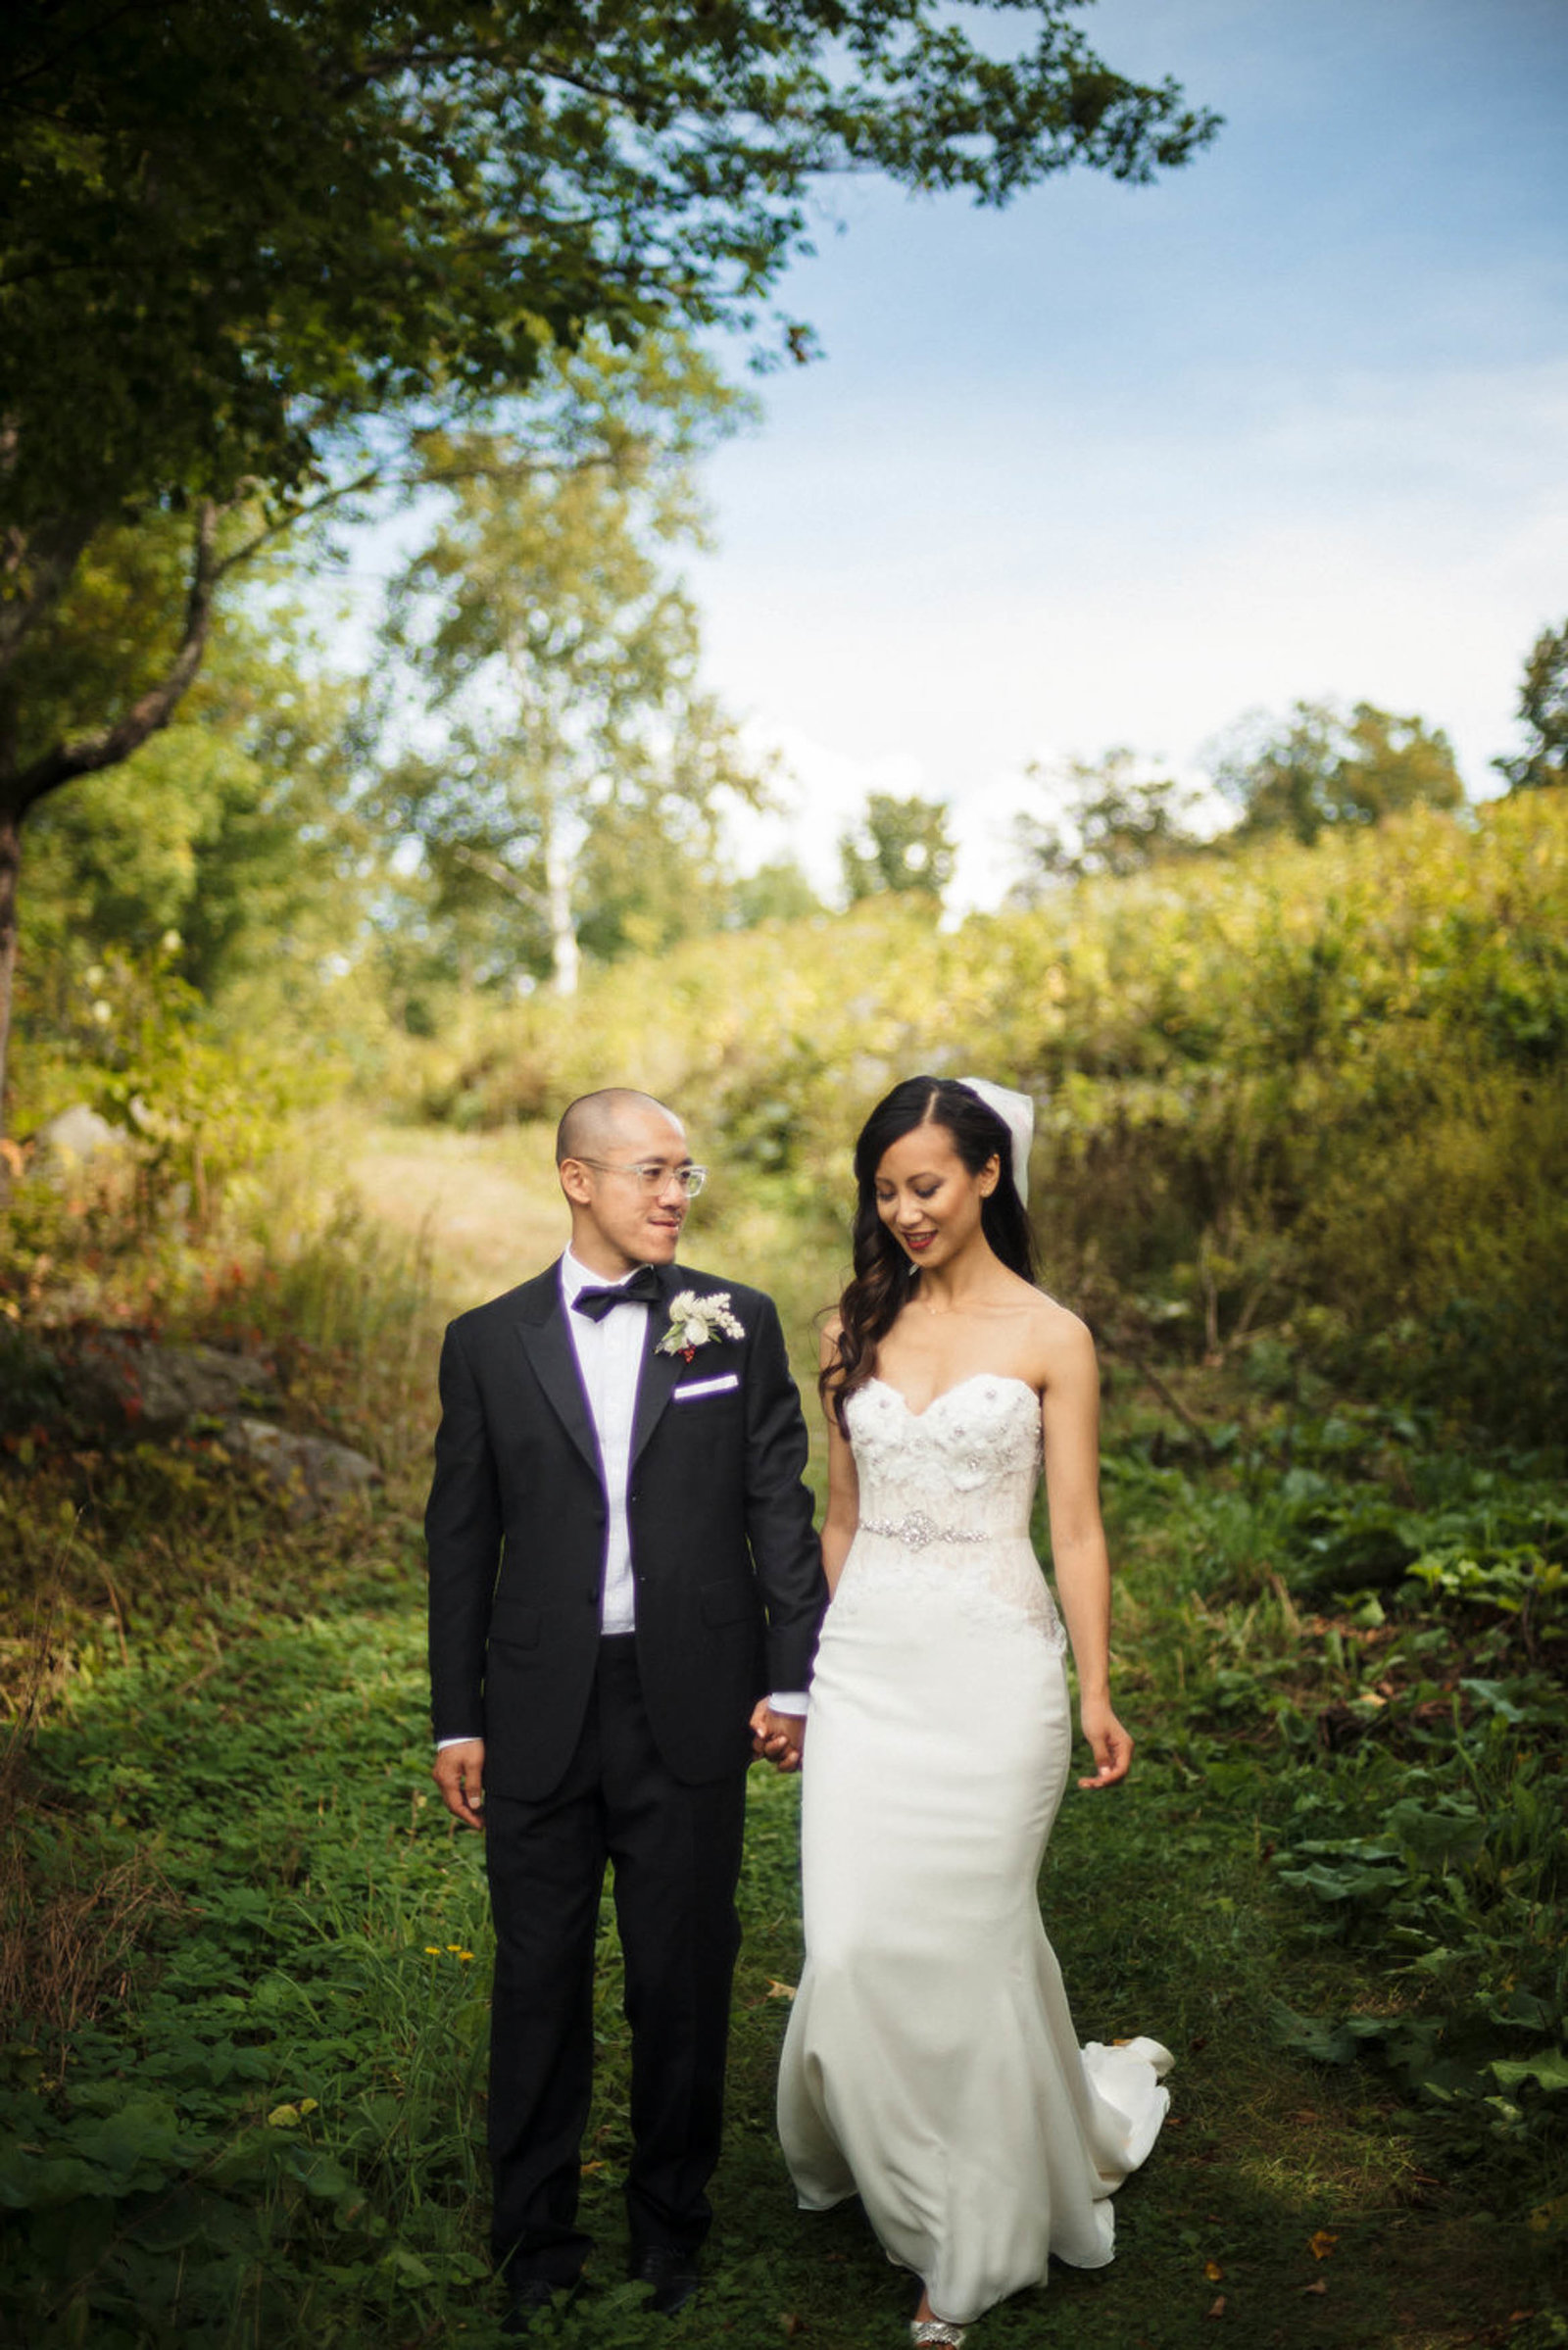 Boston-Wedding-Photographer-The-Rocks-Estate-10